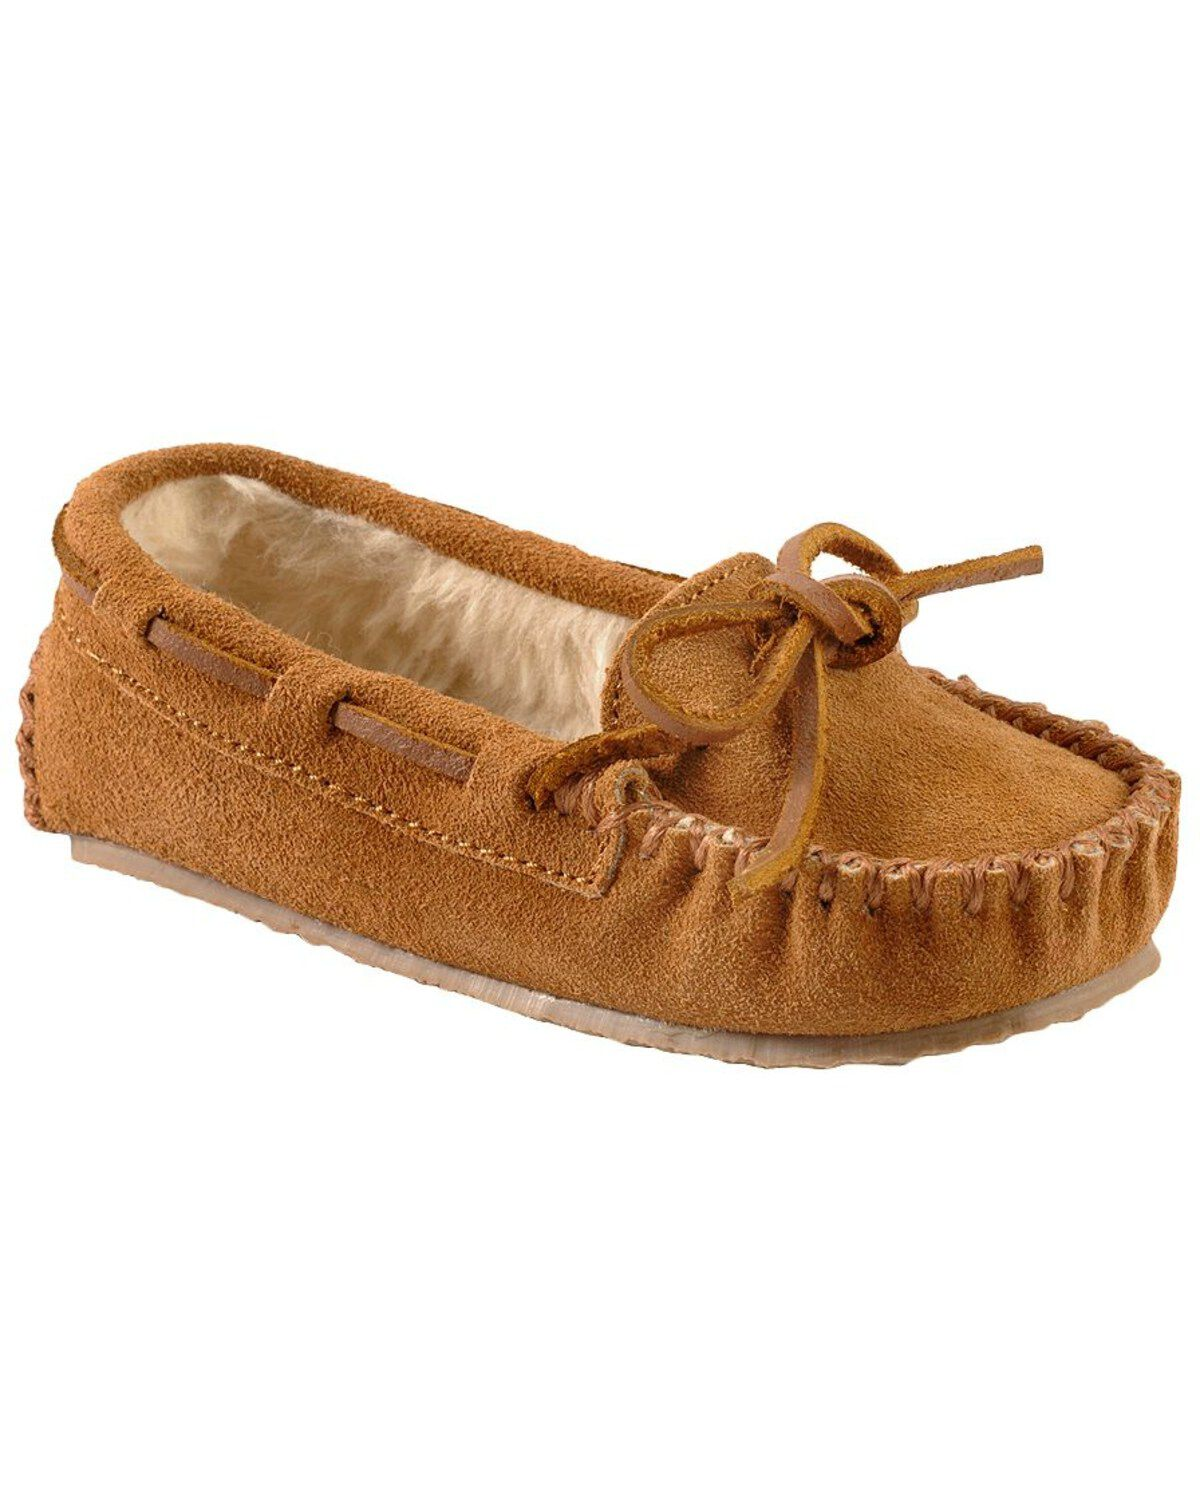 moccasins store near me